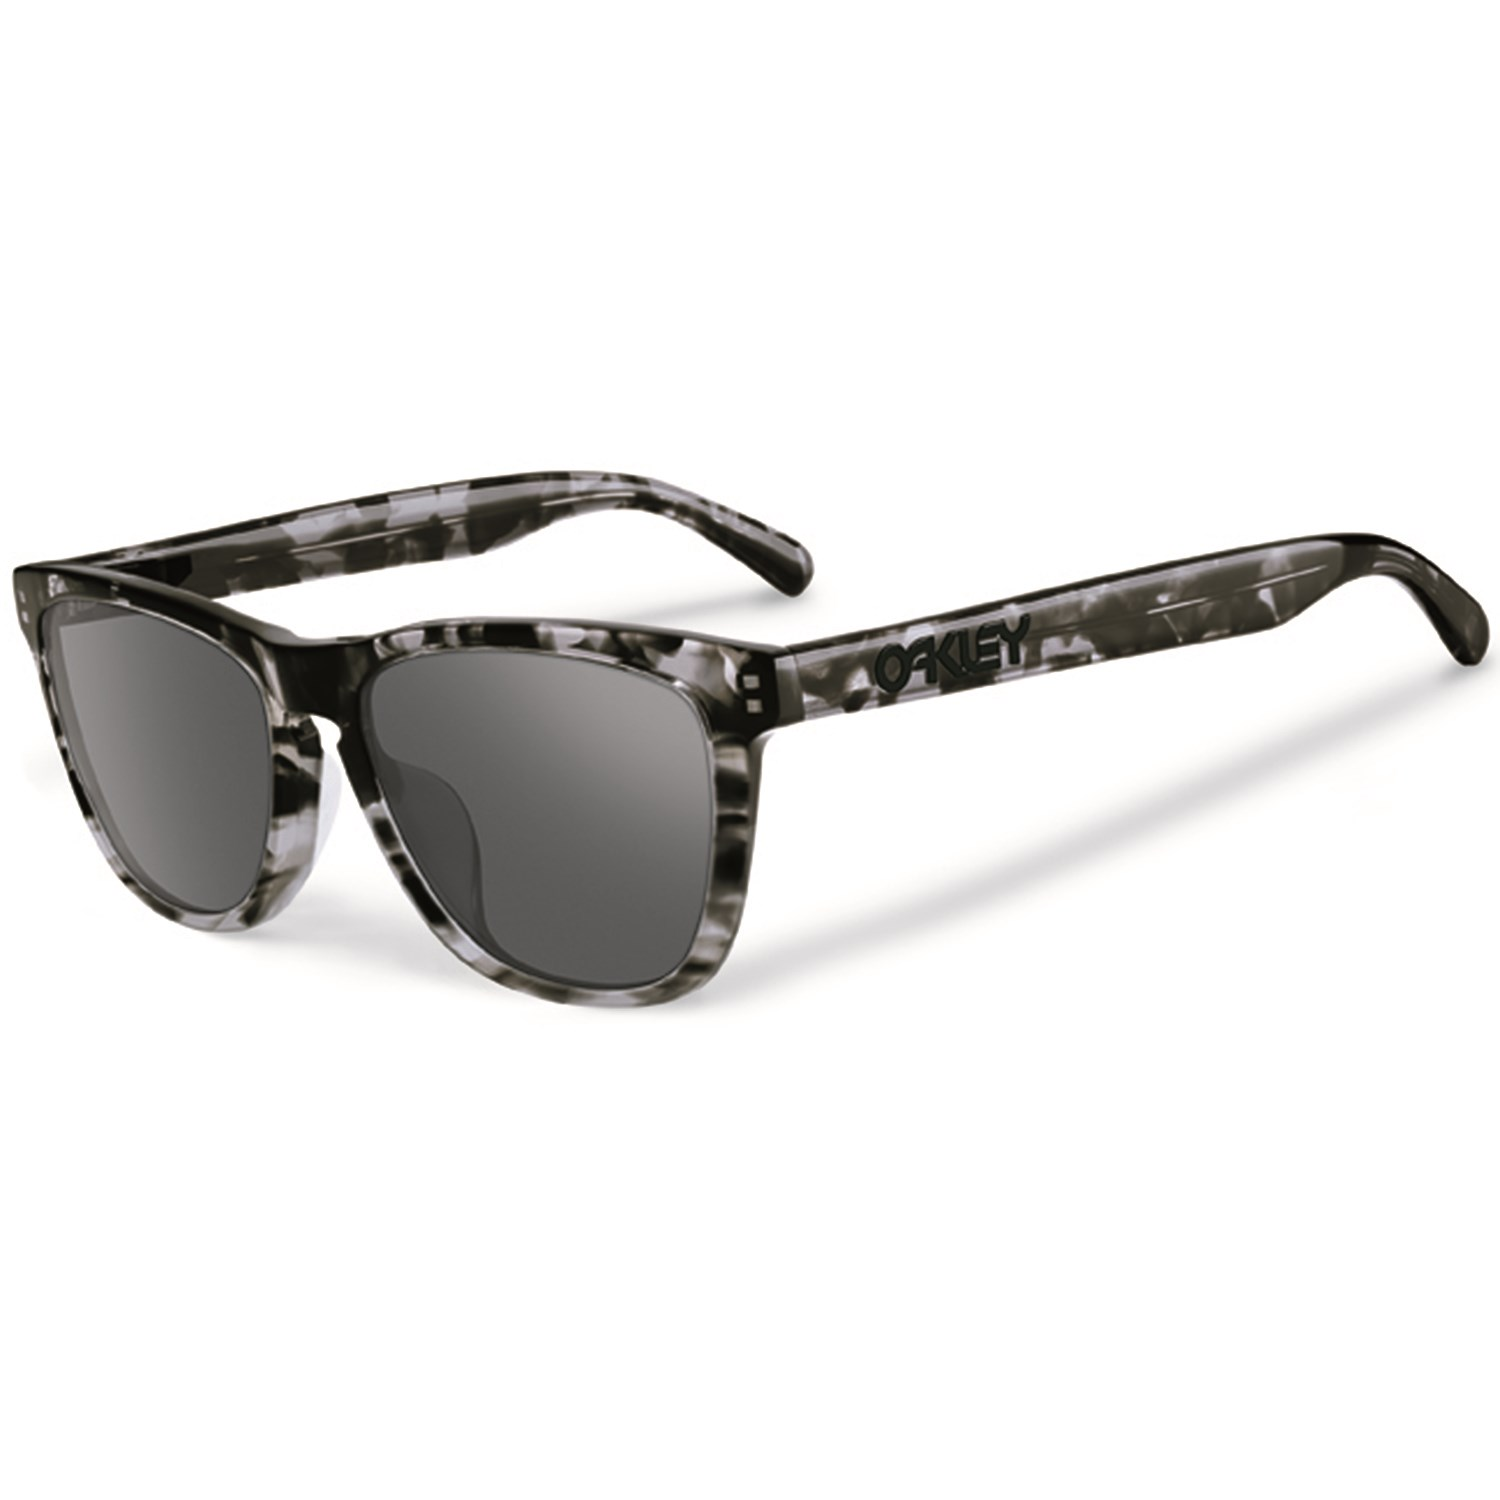 Outlet Shop Accessories Sunglasses Oakley Mens Oakley Sunglasses Outlet